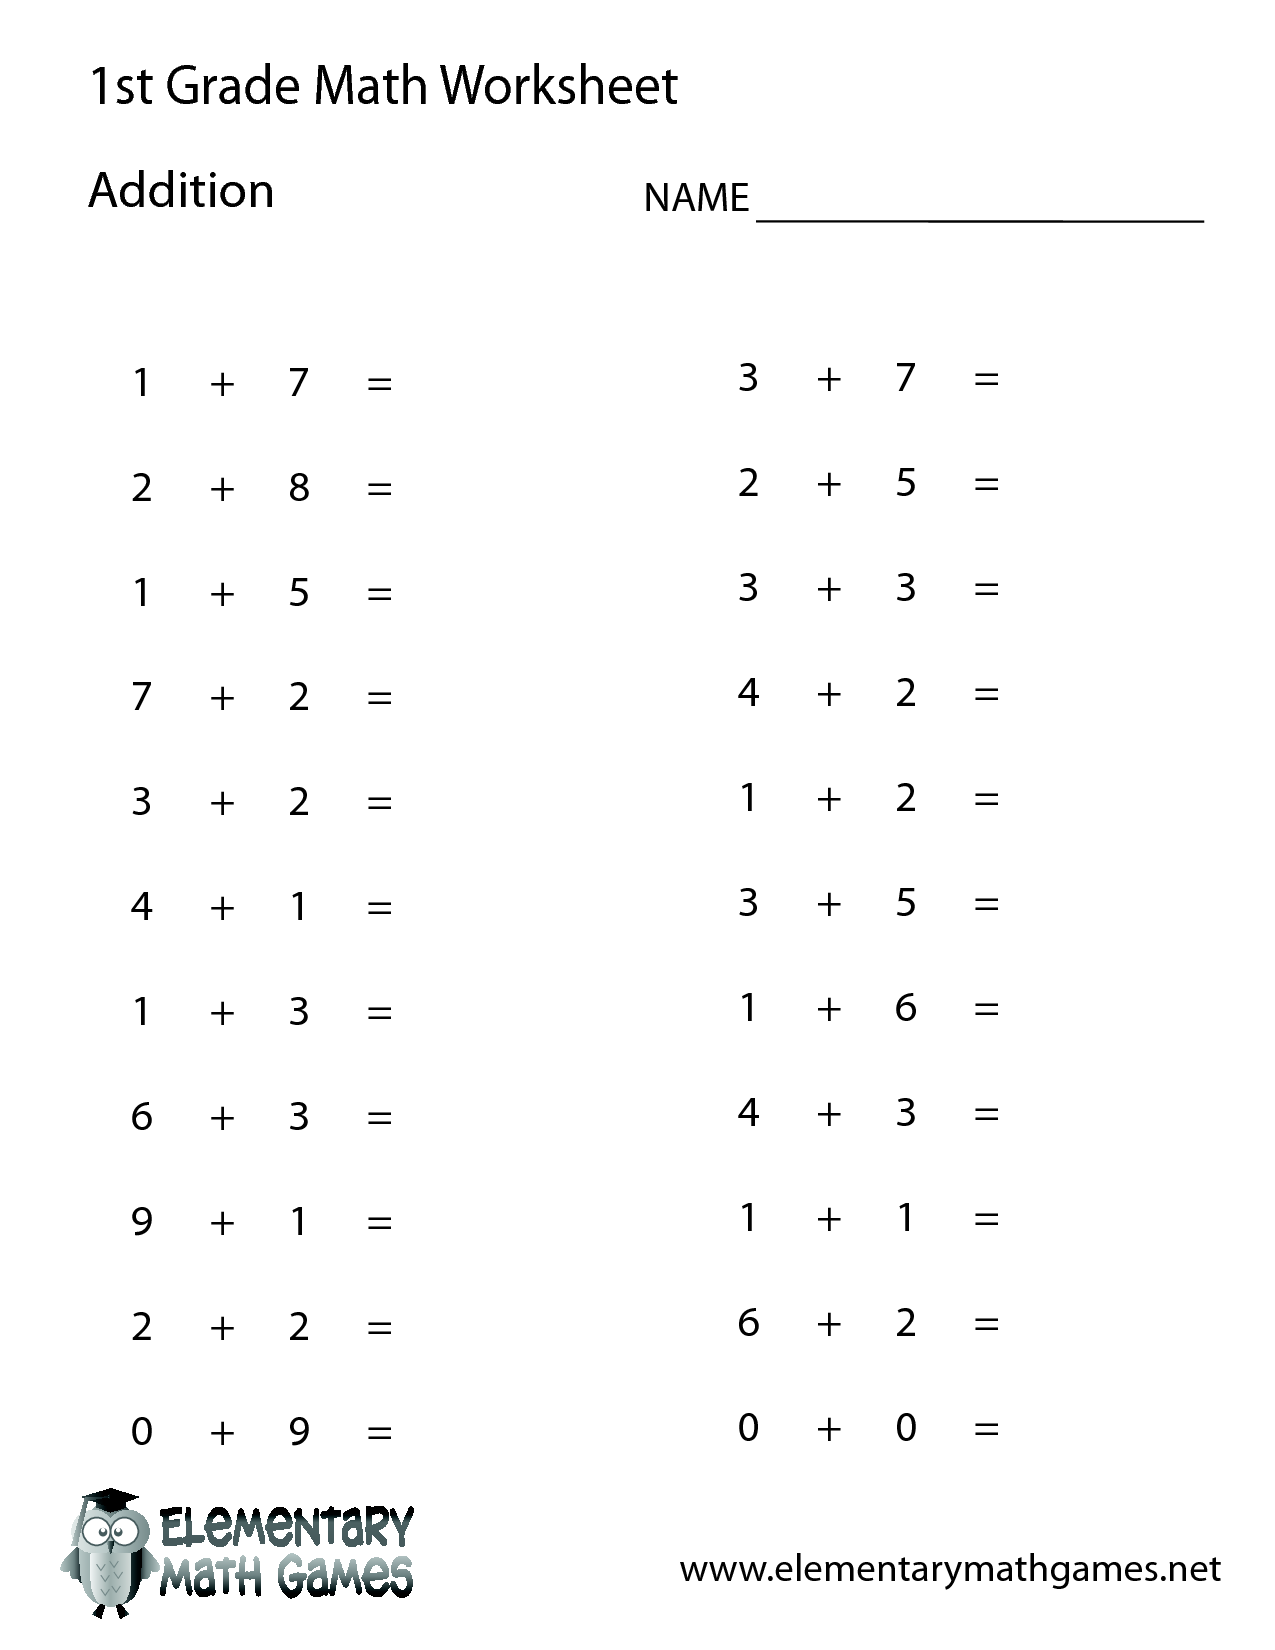 Worksheet Simple Addition And Subtraction Worksheets For First – Addition Worksheets for Grade 1